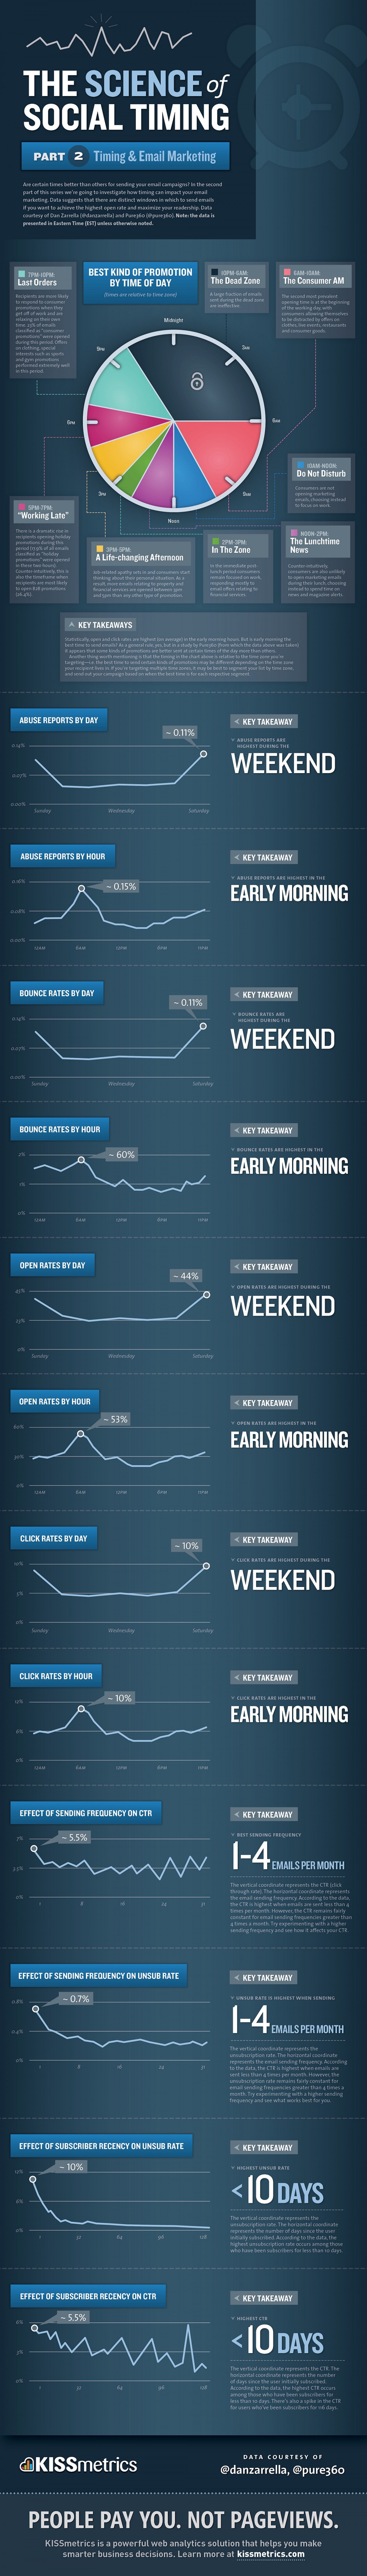 The Science of Social Timing Part 2: Timing & Email Marketing Infographic